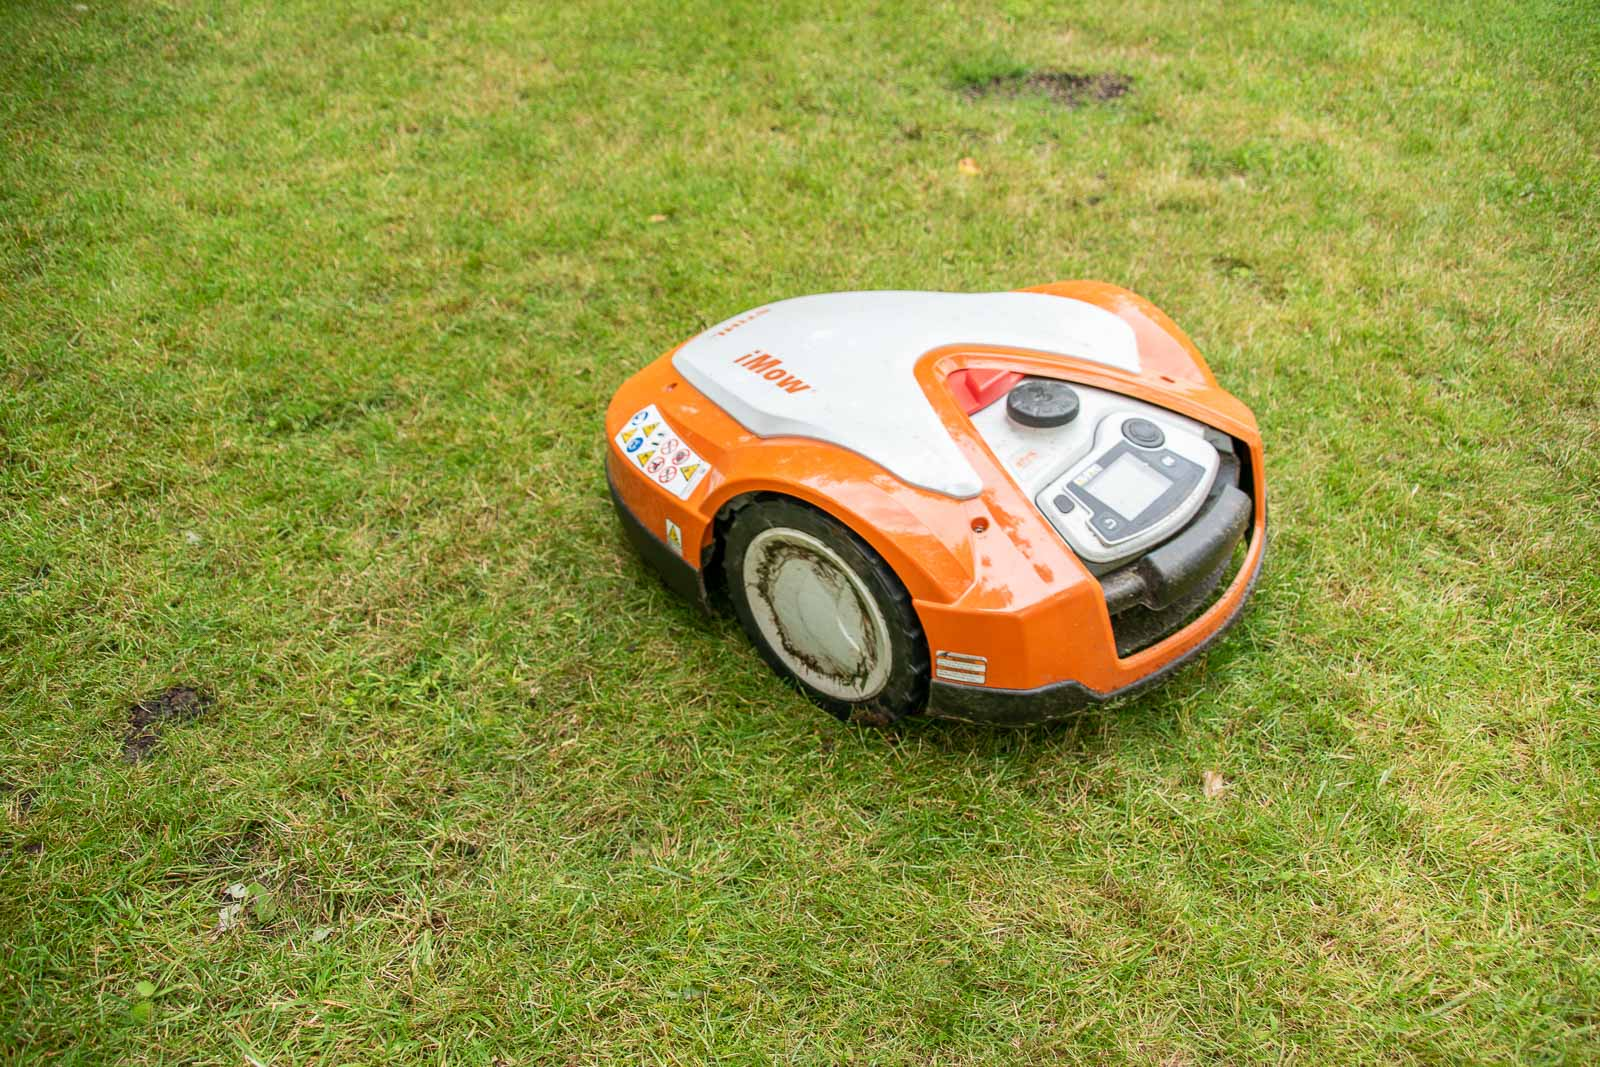 imow lawn mower